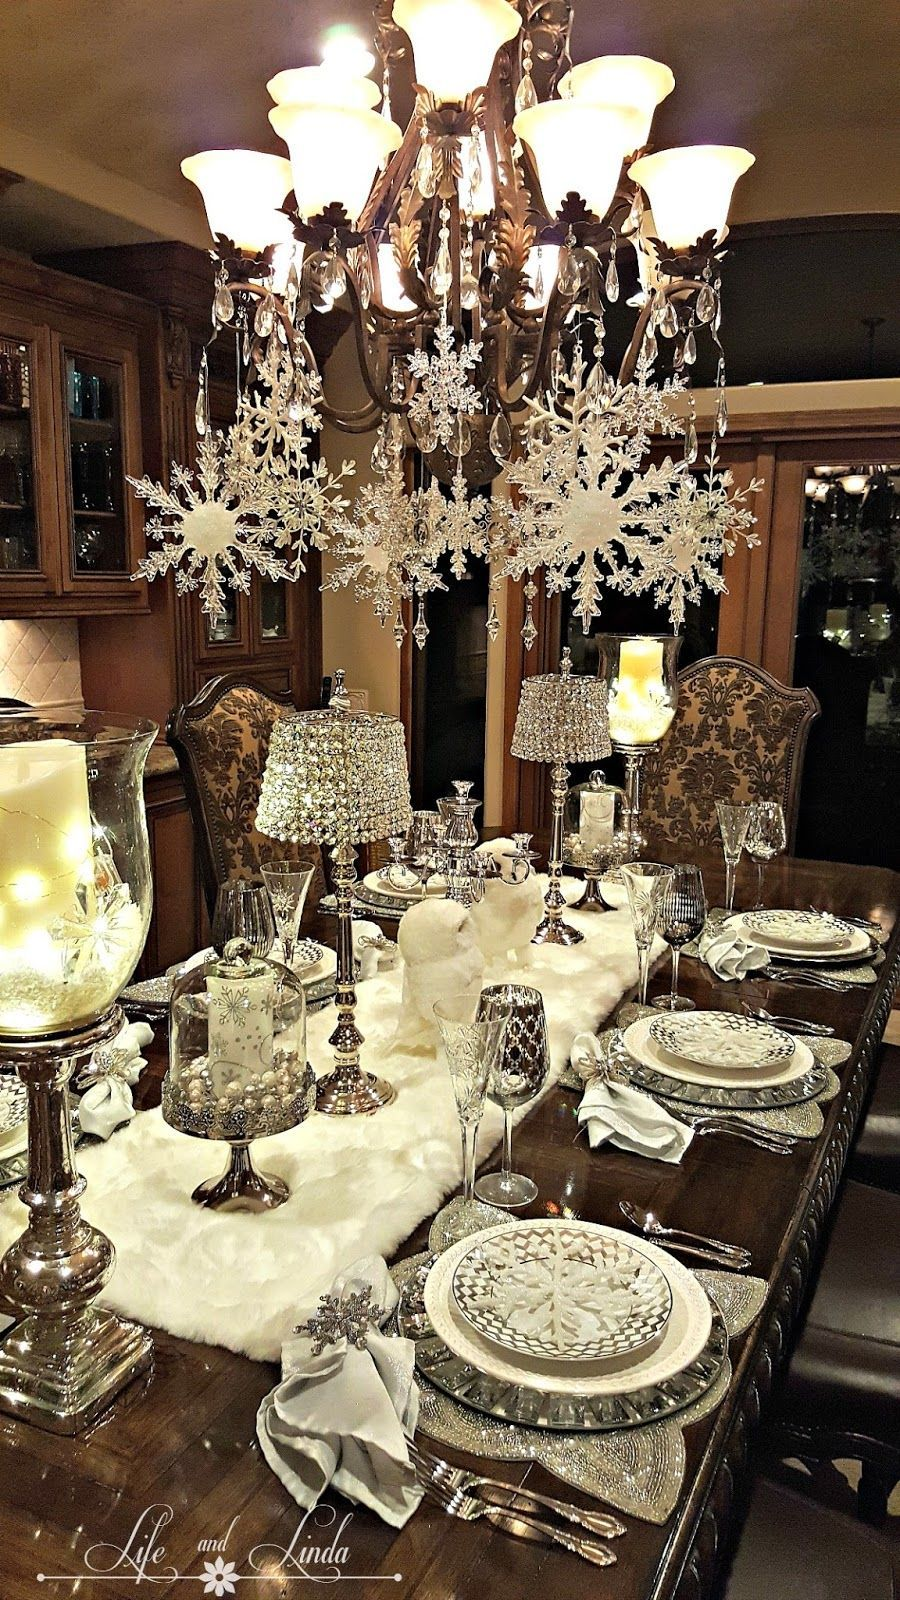 Charming Snowflakes And Baubles Tablescape | Life And Linda  Blog Design,  Decorating, Tablescapes,